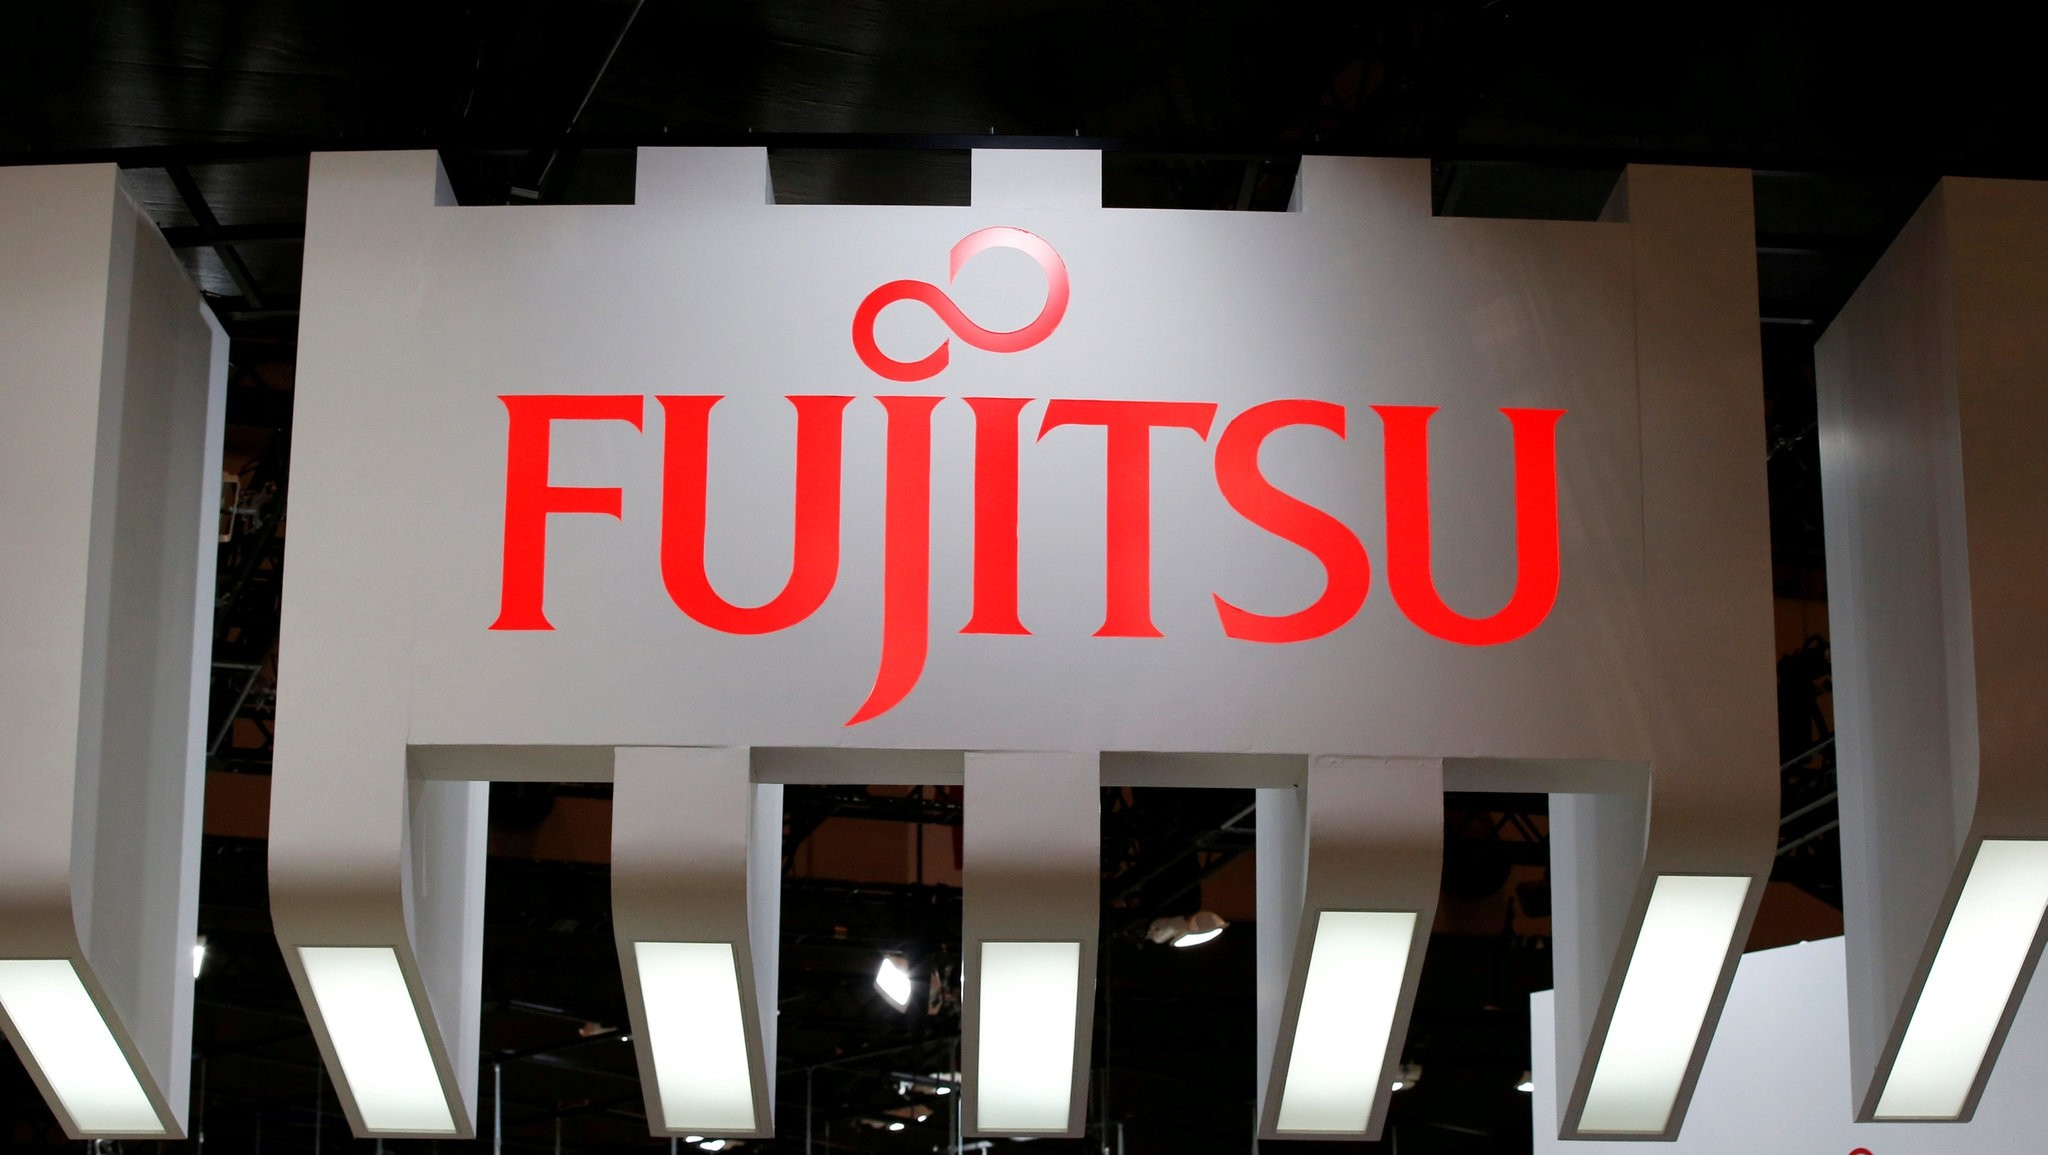 A logo of Fujitsu is pictured at CEATEC (Combined Exhibition of Advanced Technologies) JAPAN 2016 at the Makuhari Messe in Chiba, Japan, October 3, 2016. (REUTERS Photo)